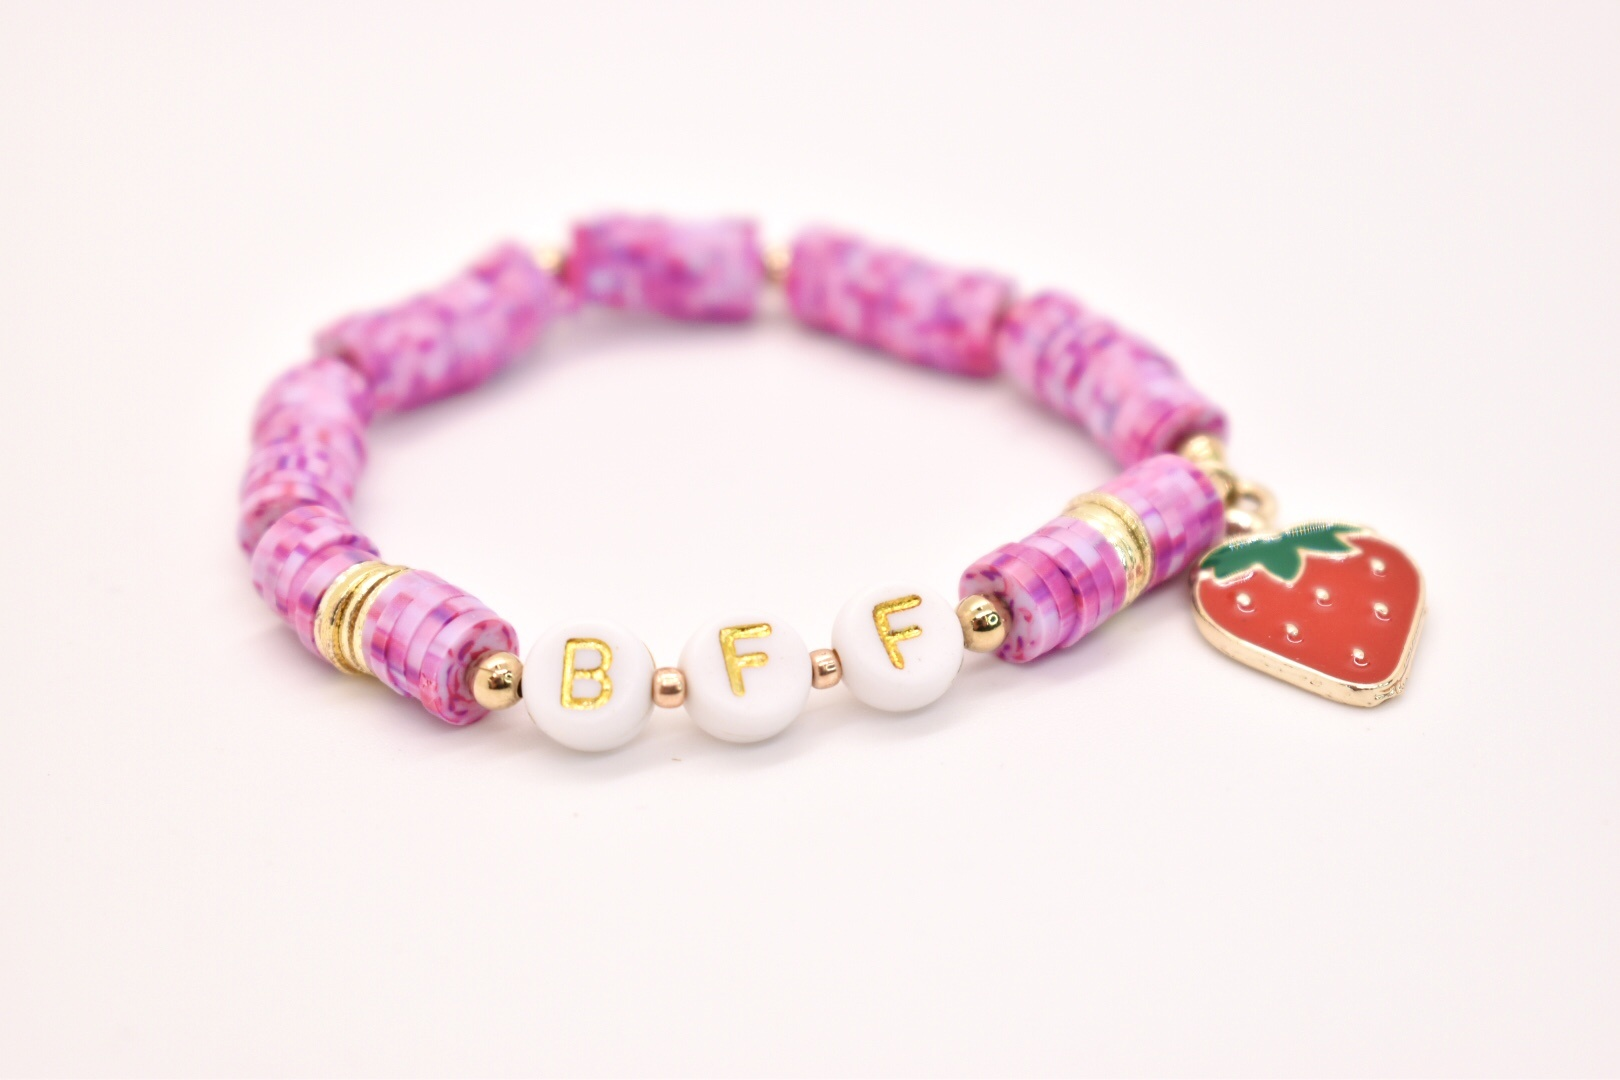 Hip Hope Hoorah - HHH BFF Kid's Bracelet with strawberry charm in speckled pink